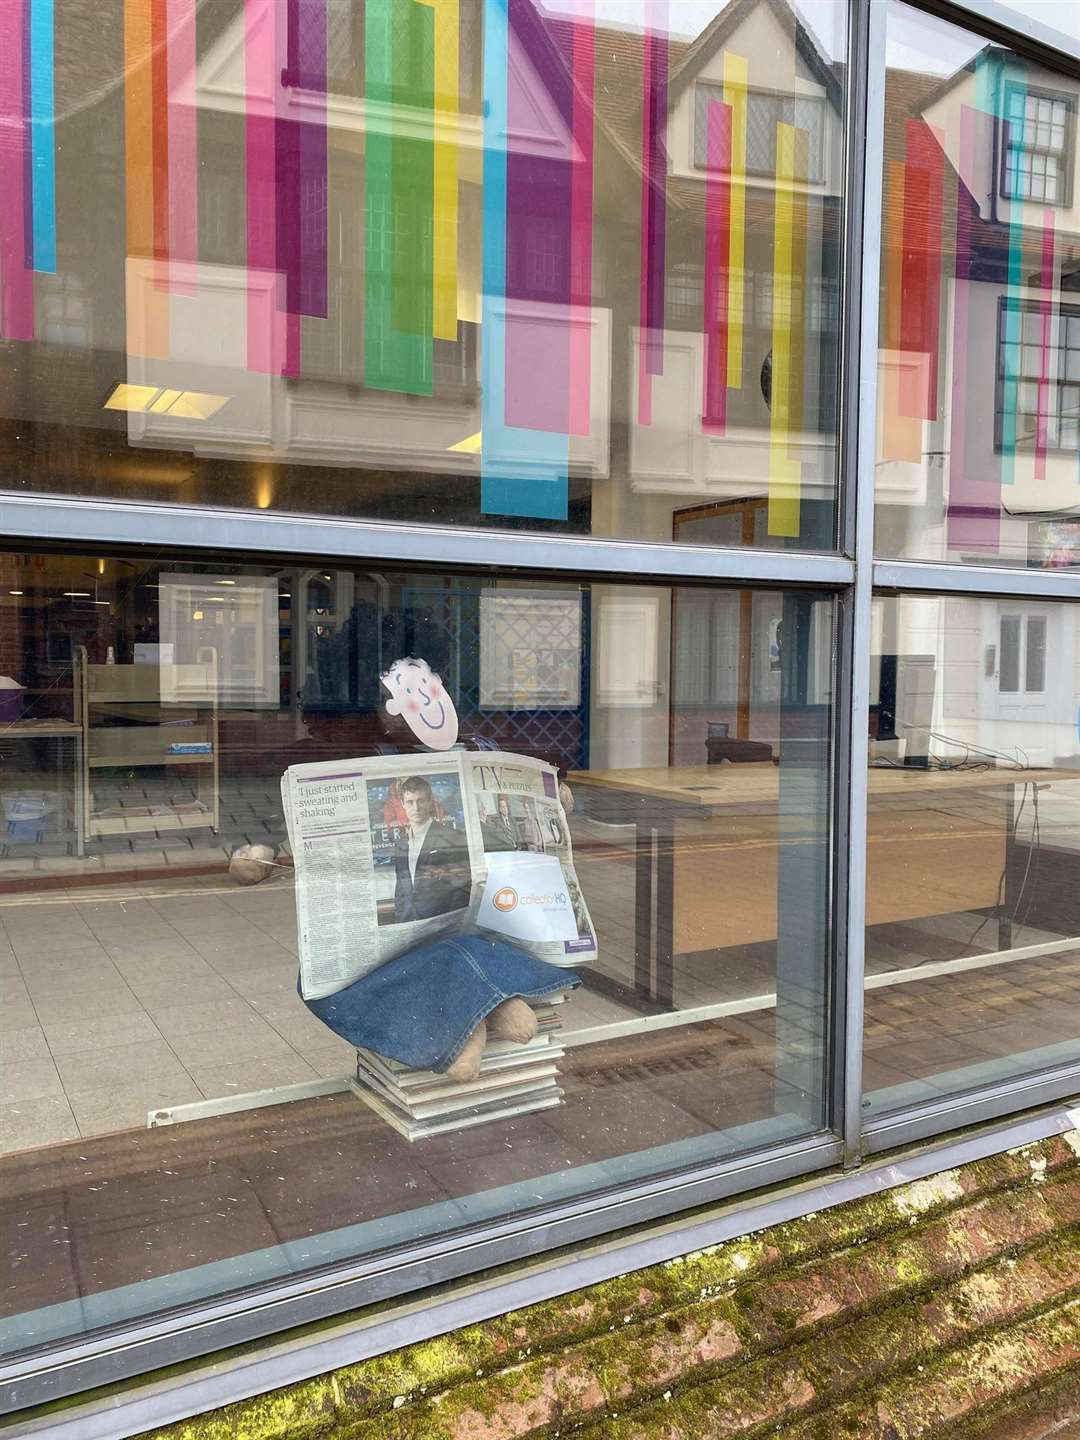 Ipswich County Library has installed a Tracy Beaker scarecrow. Picture: Ipswich County Library Facebook